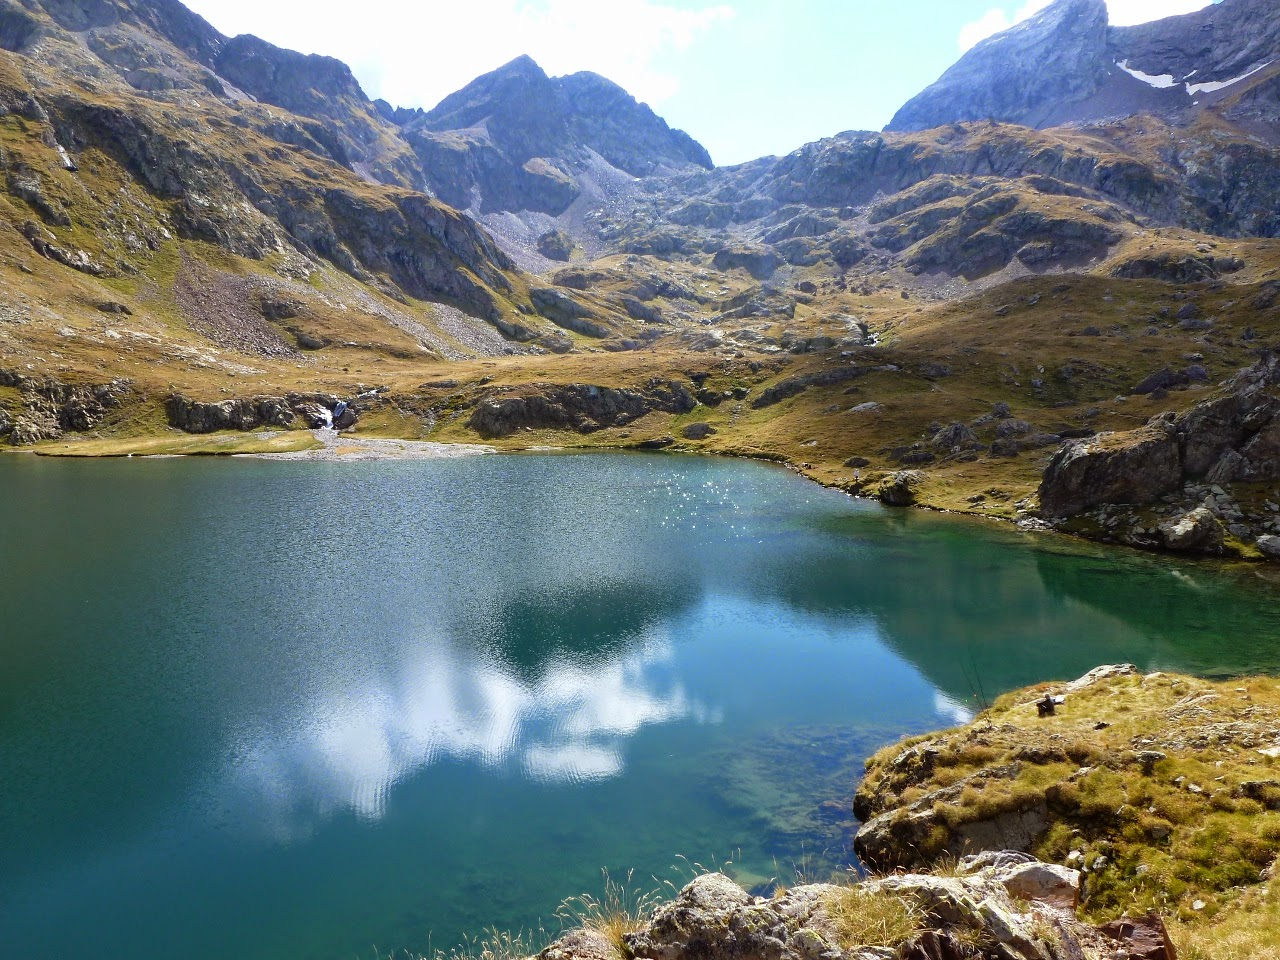 the Lac d'Arratille